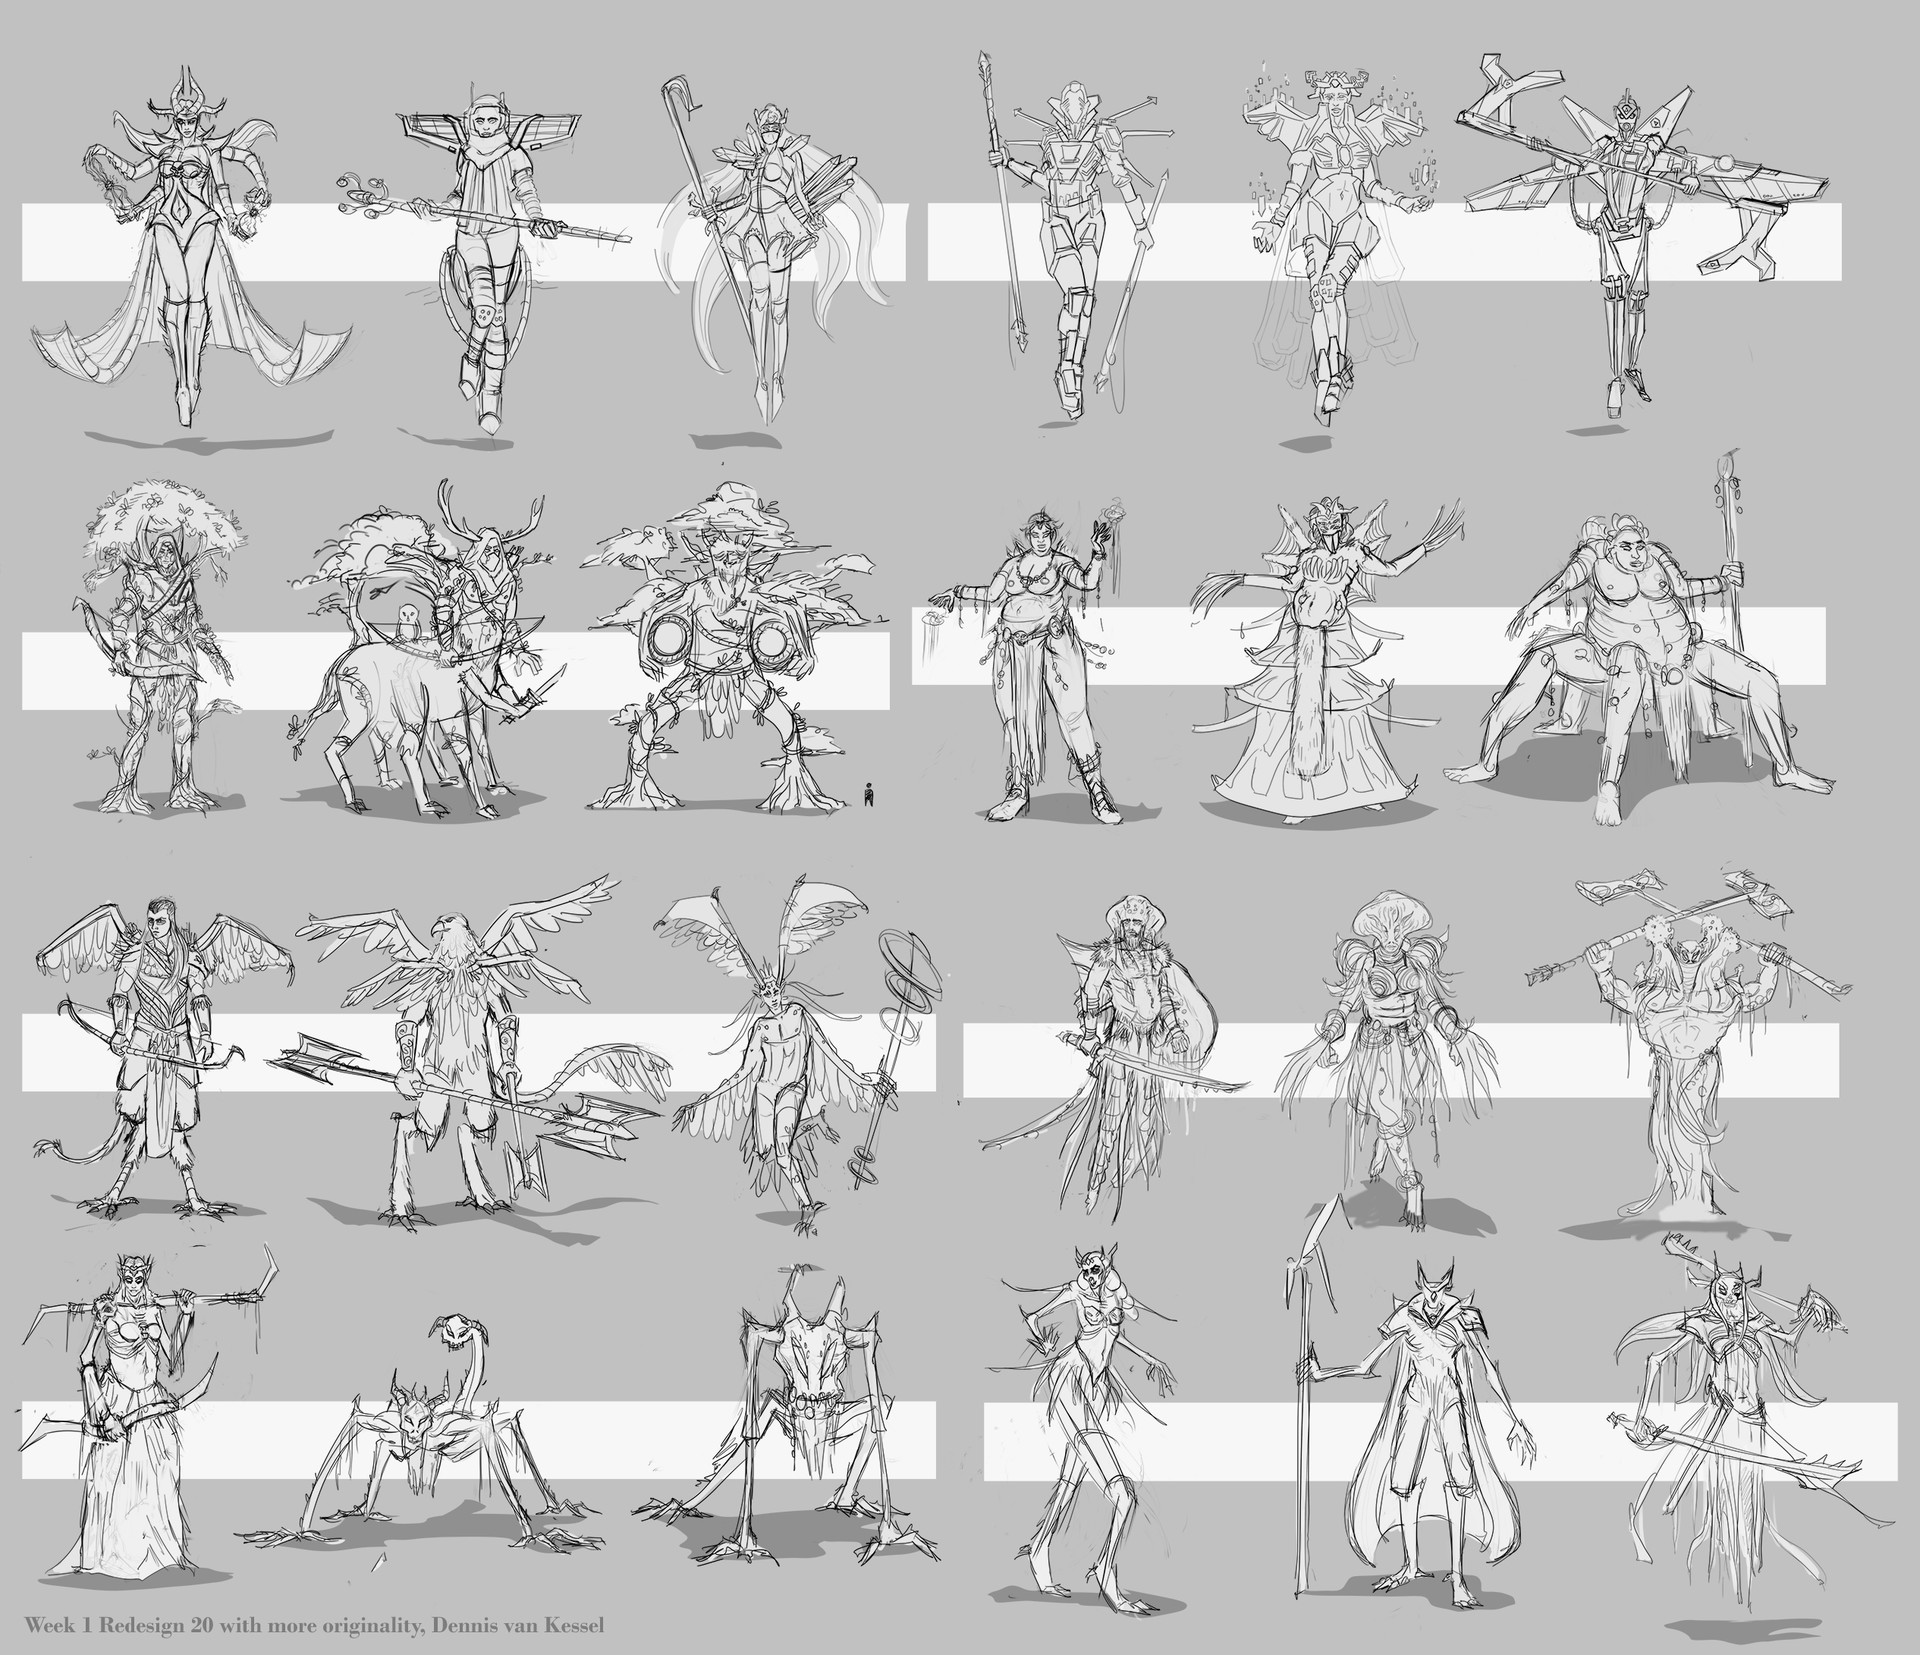 Dennis van kessel second 24 character designs